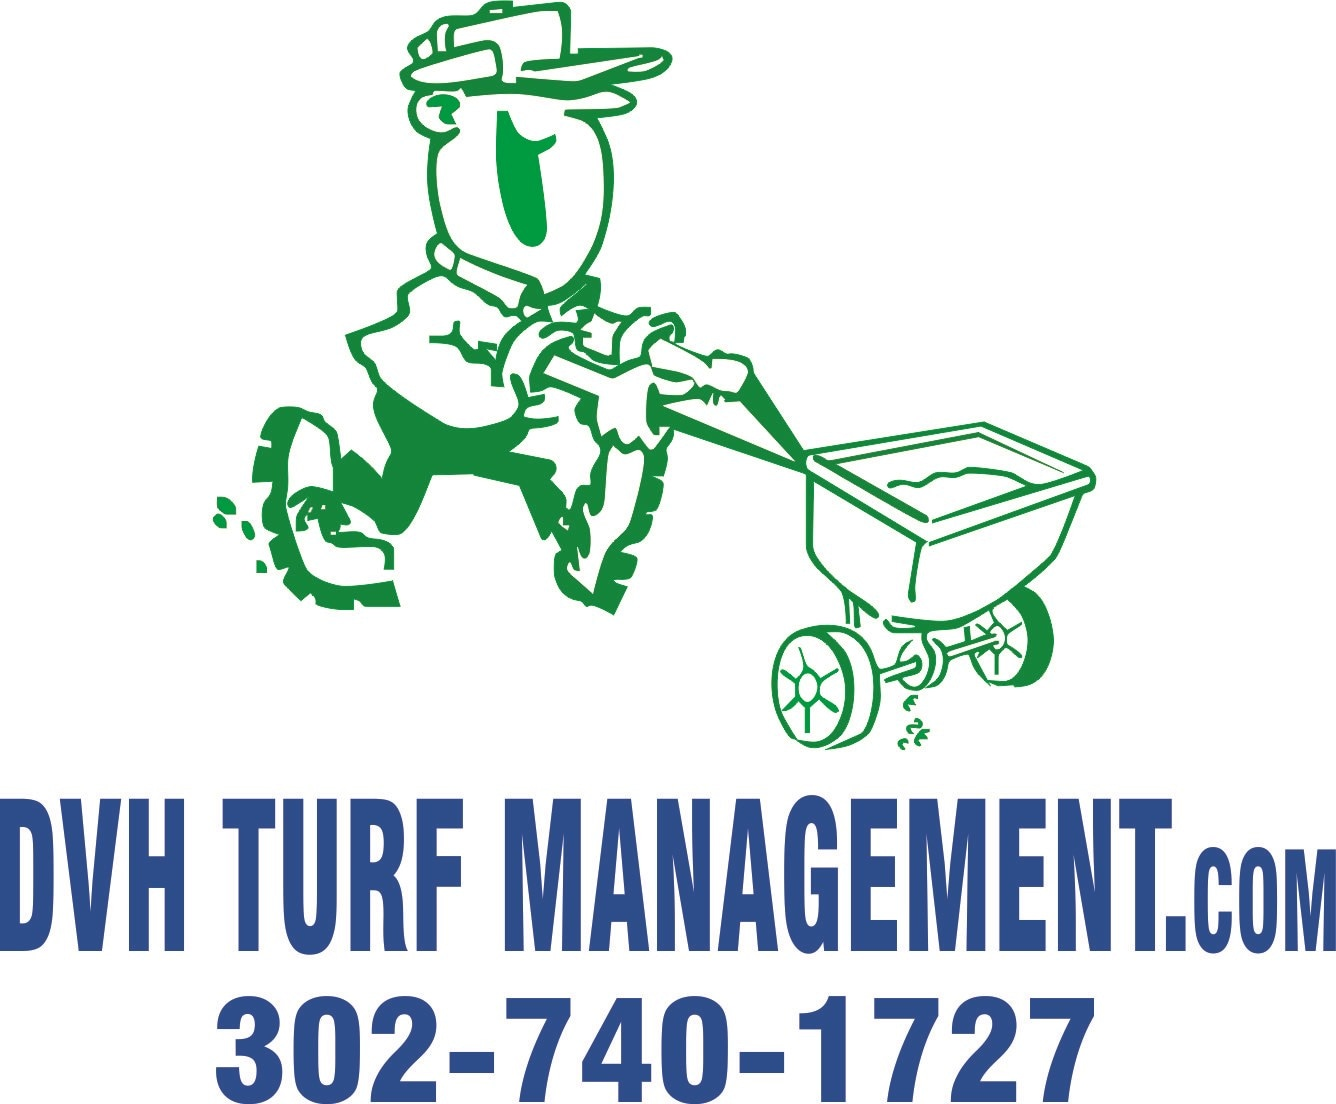 DVH Turf Management